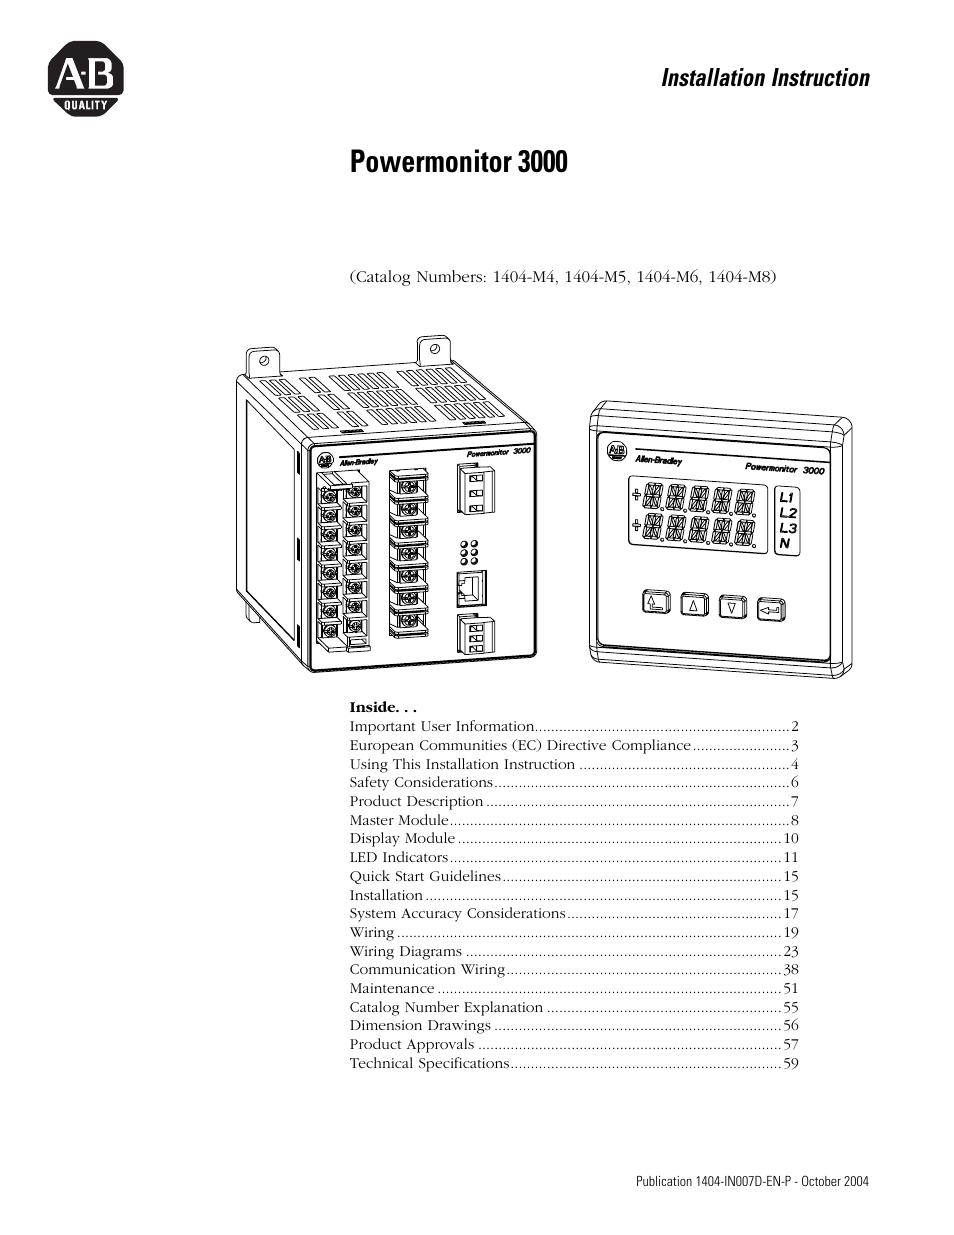 Rockwell Automation 1404-M4_M5_M6_M8 Powermonitor 3000 Installation  Instructions, PRIOR to Firmware rev. 3.0 User Manual | 66 pages